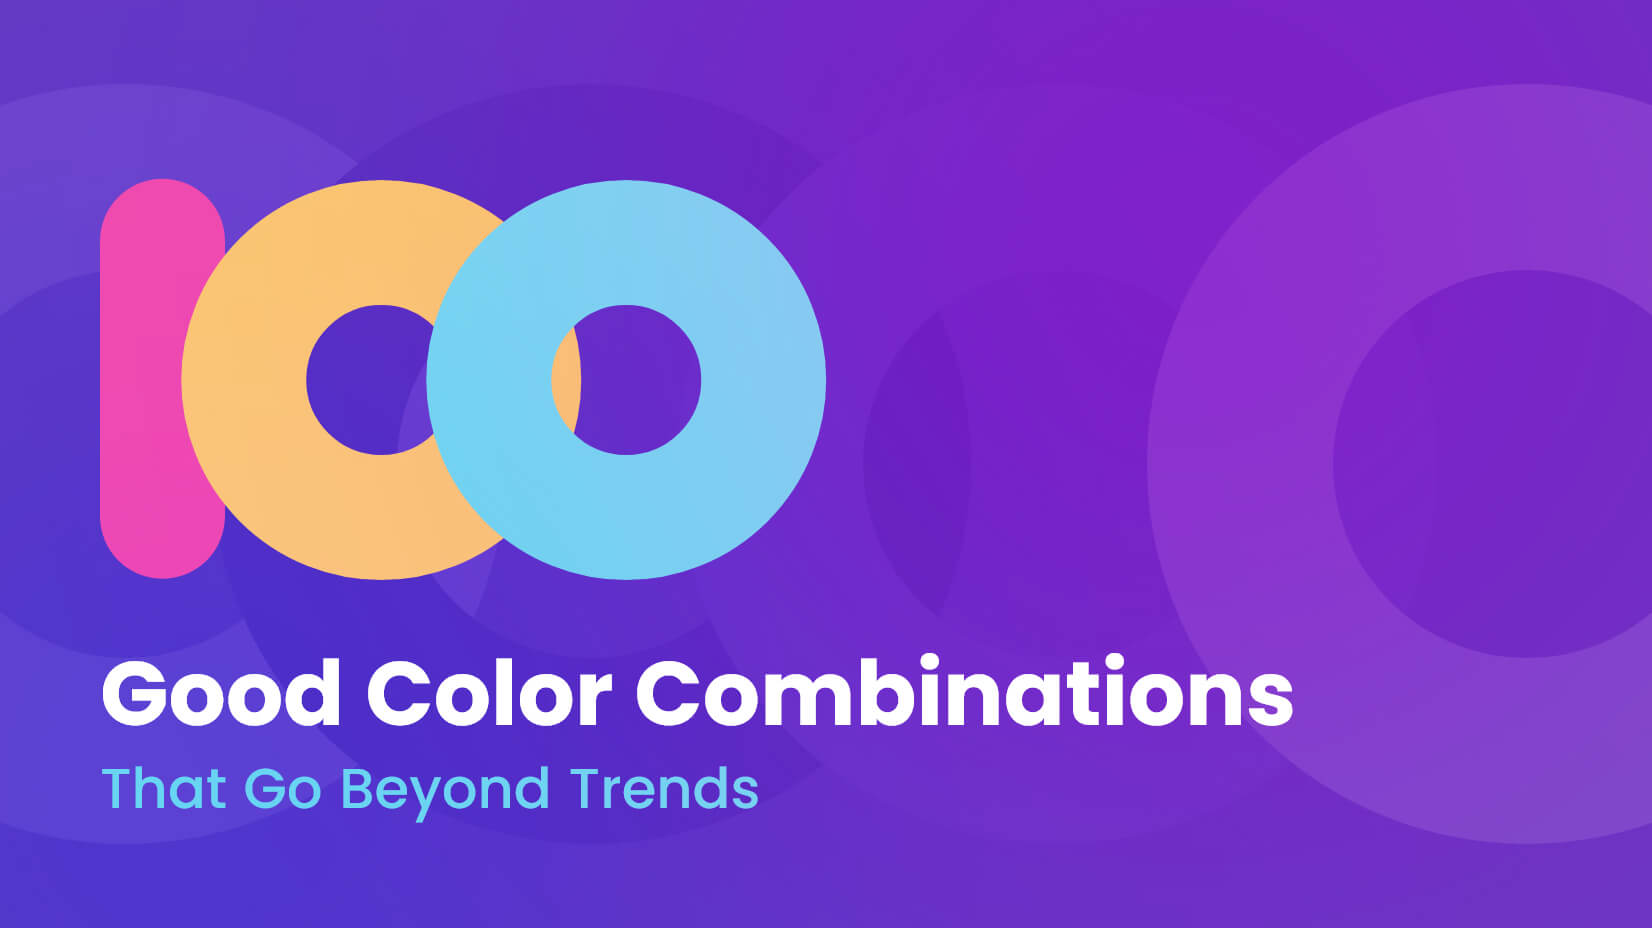 100 Good Color Combinations That Go Beyond Trends